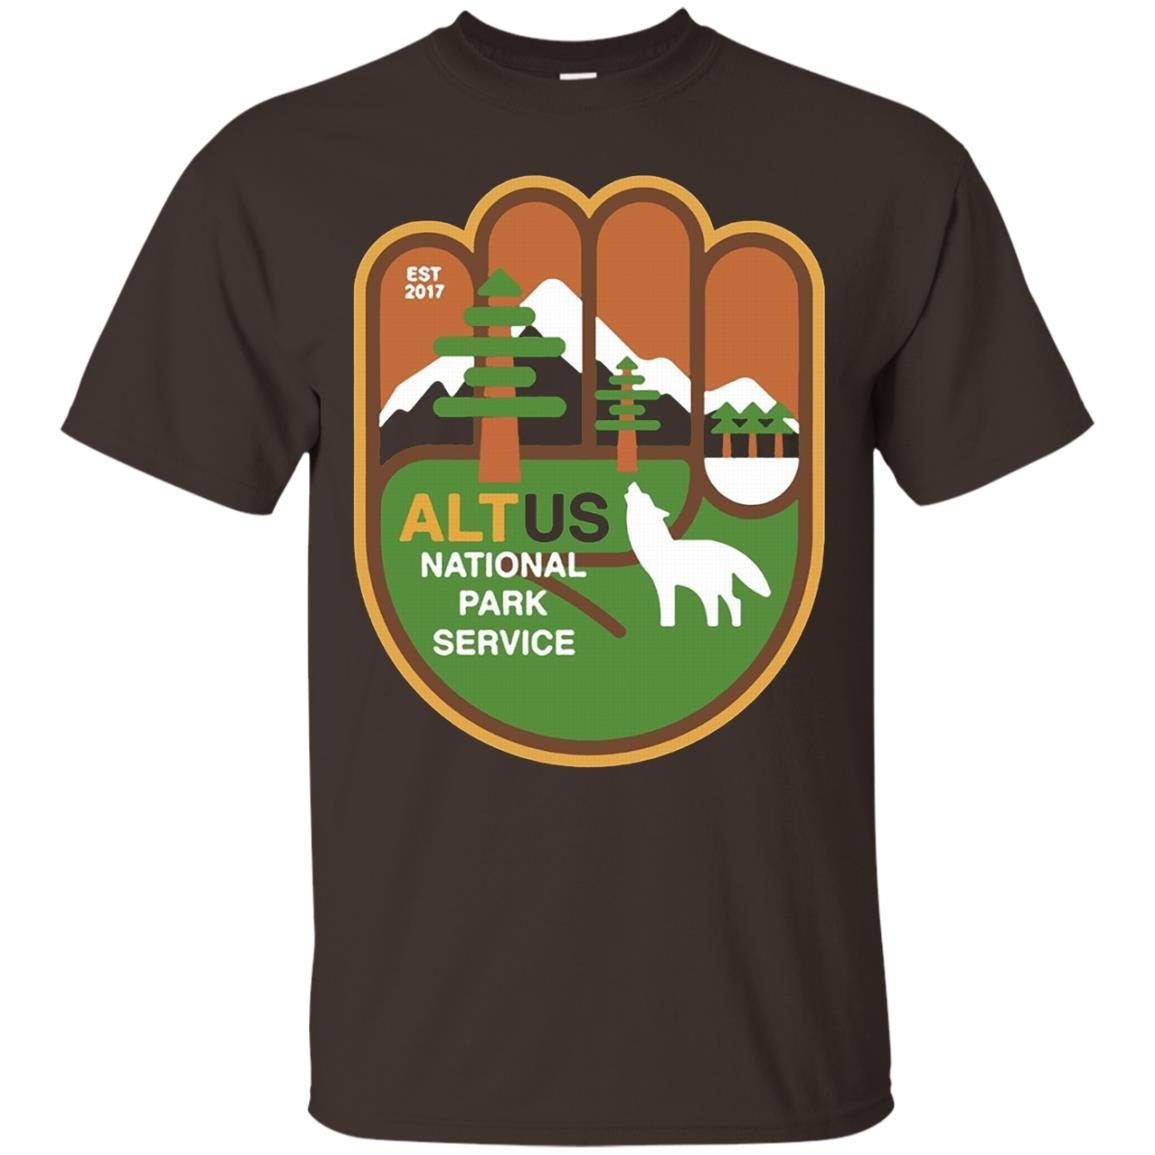 ALT US National Park Service T-Shirt